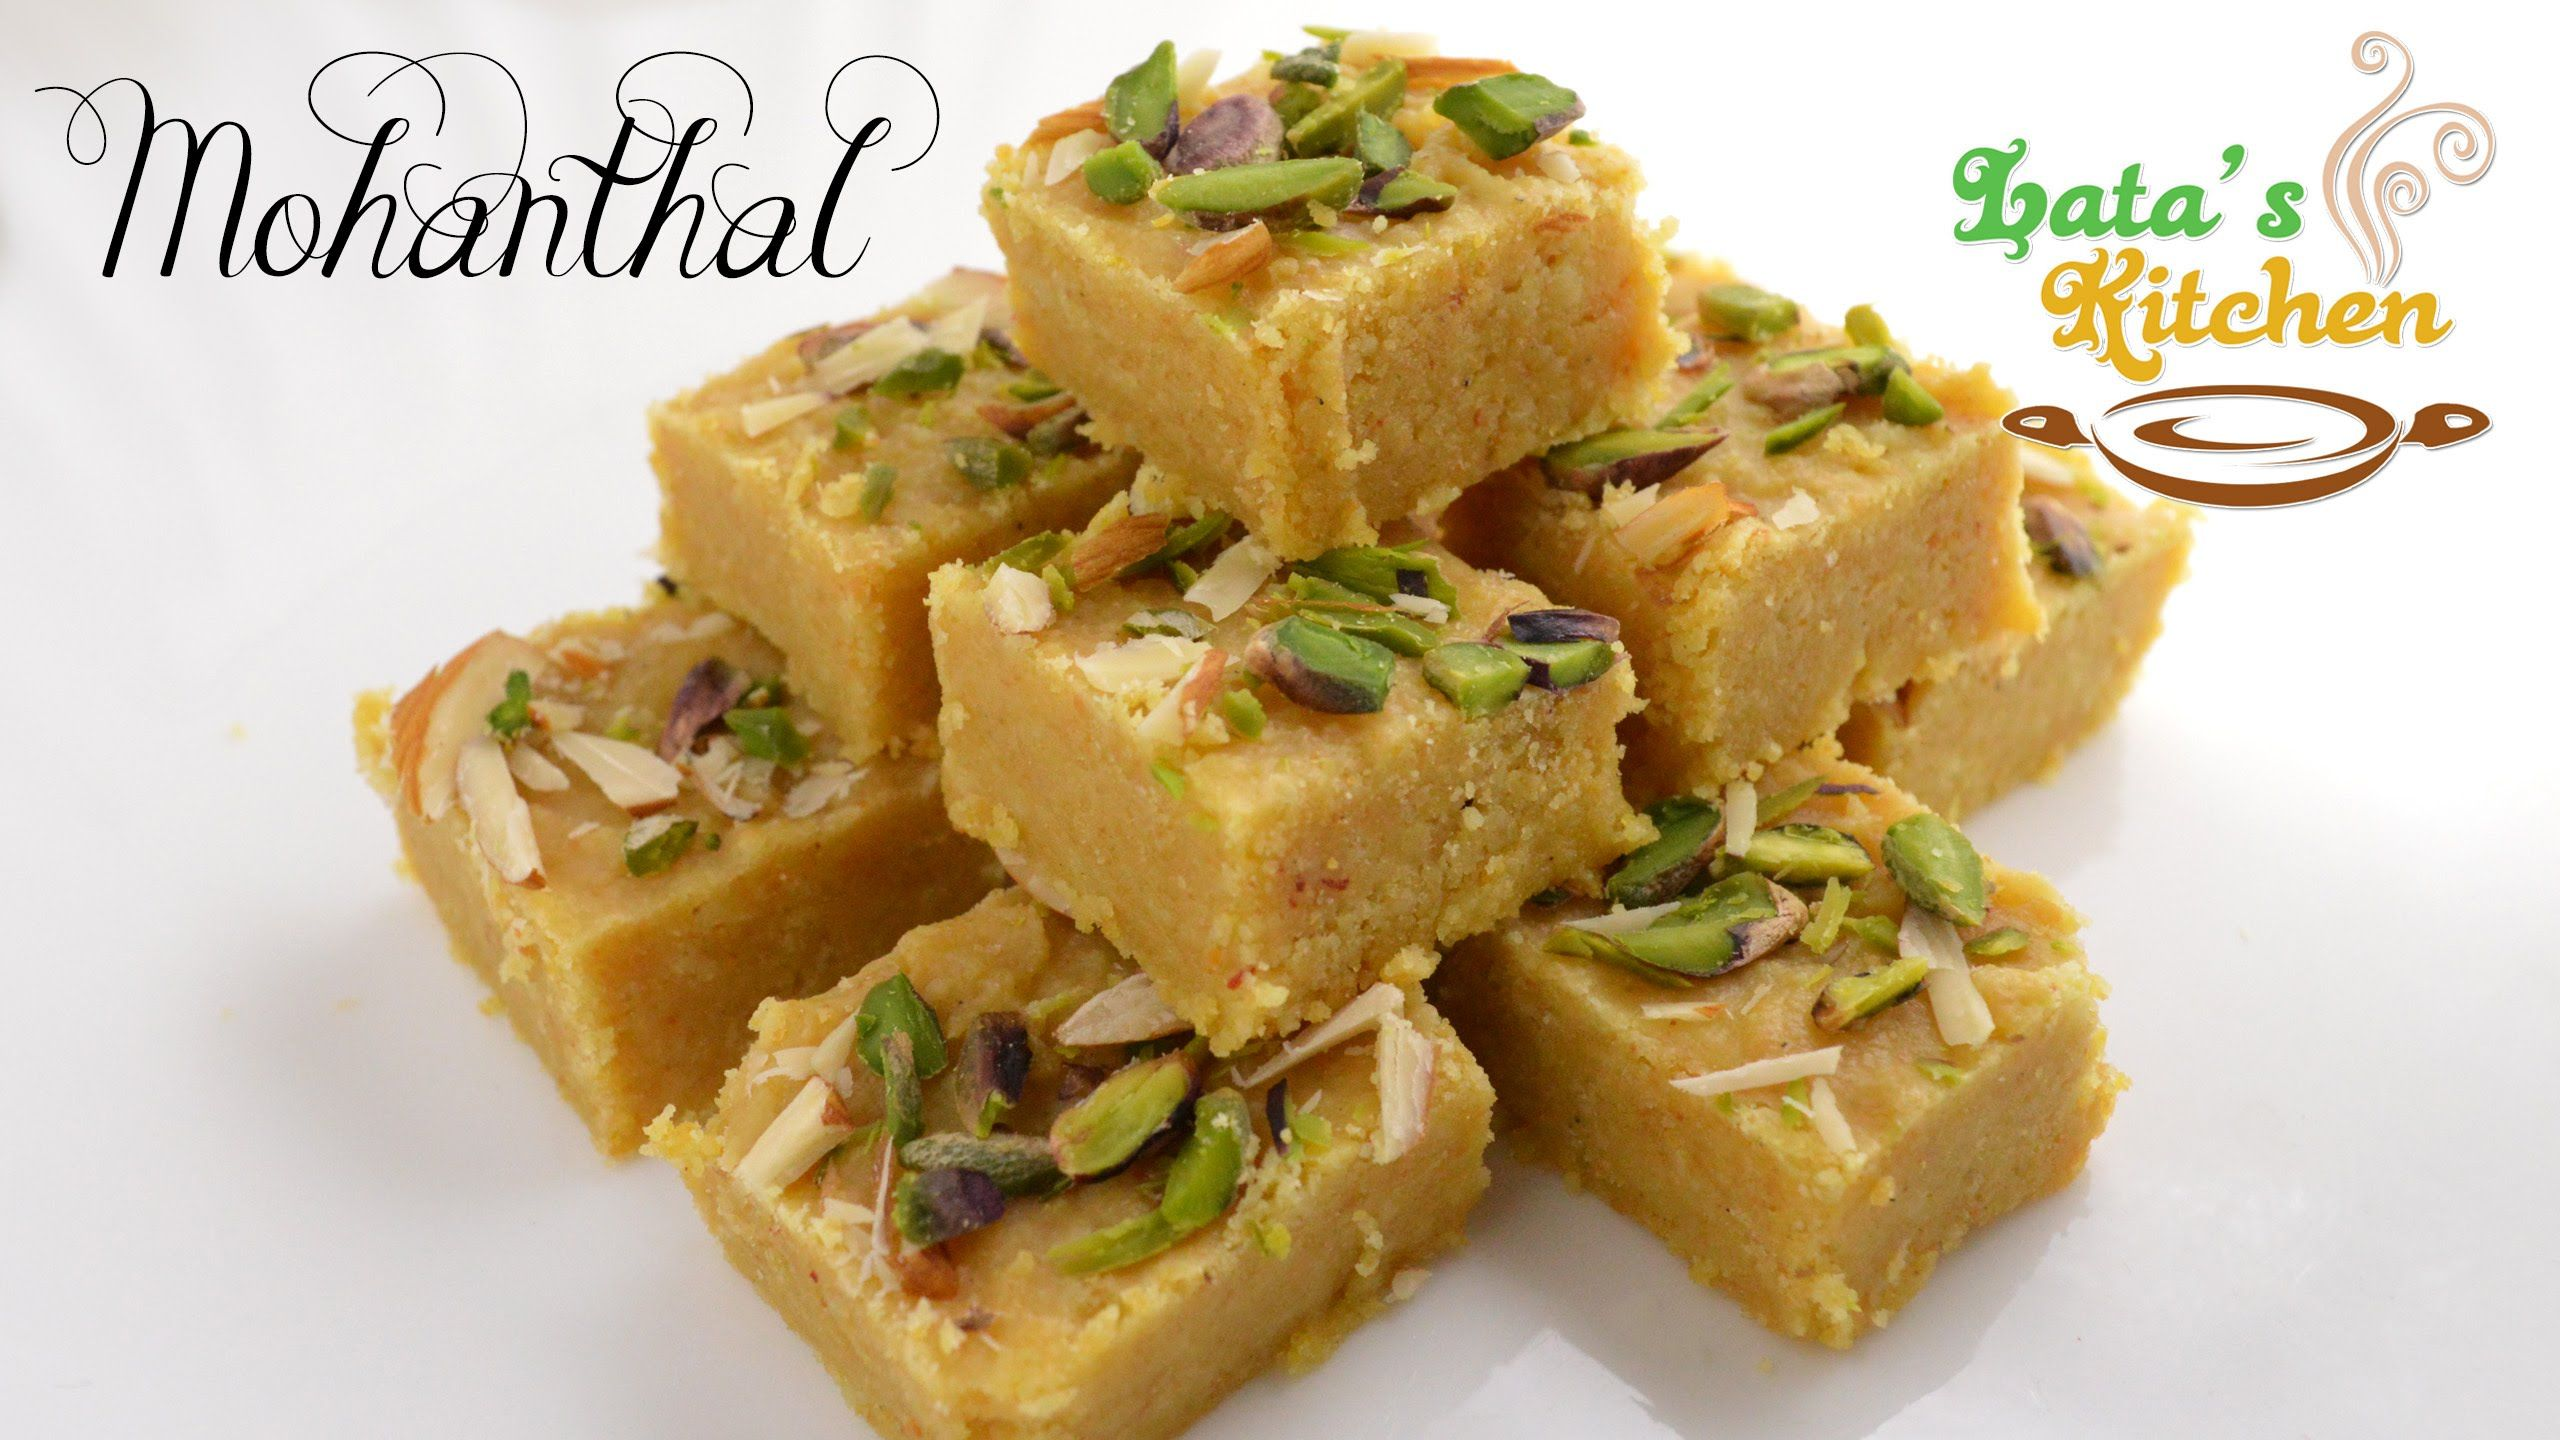 Mohanthal recipe video gujarati indian vegetarian fudge recipe in mohanthal recipe video gujarati indian vegetarian fudge recipe in hindi with english subtitles forumfinder